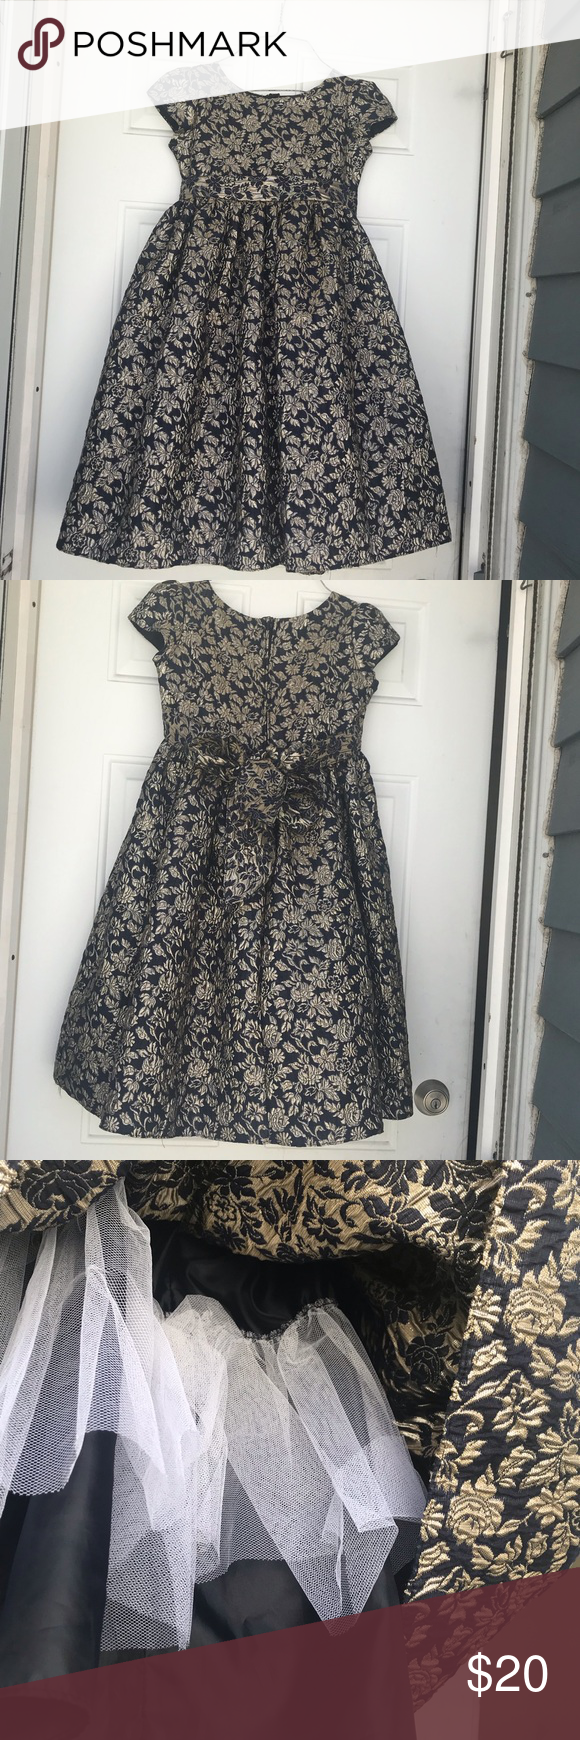 Photo of Girl dress size 10 Cinderella dress for girl size 10 Like new in great conditi…